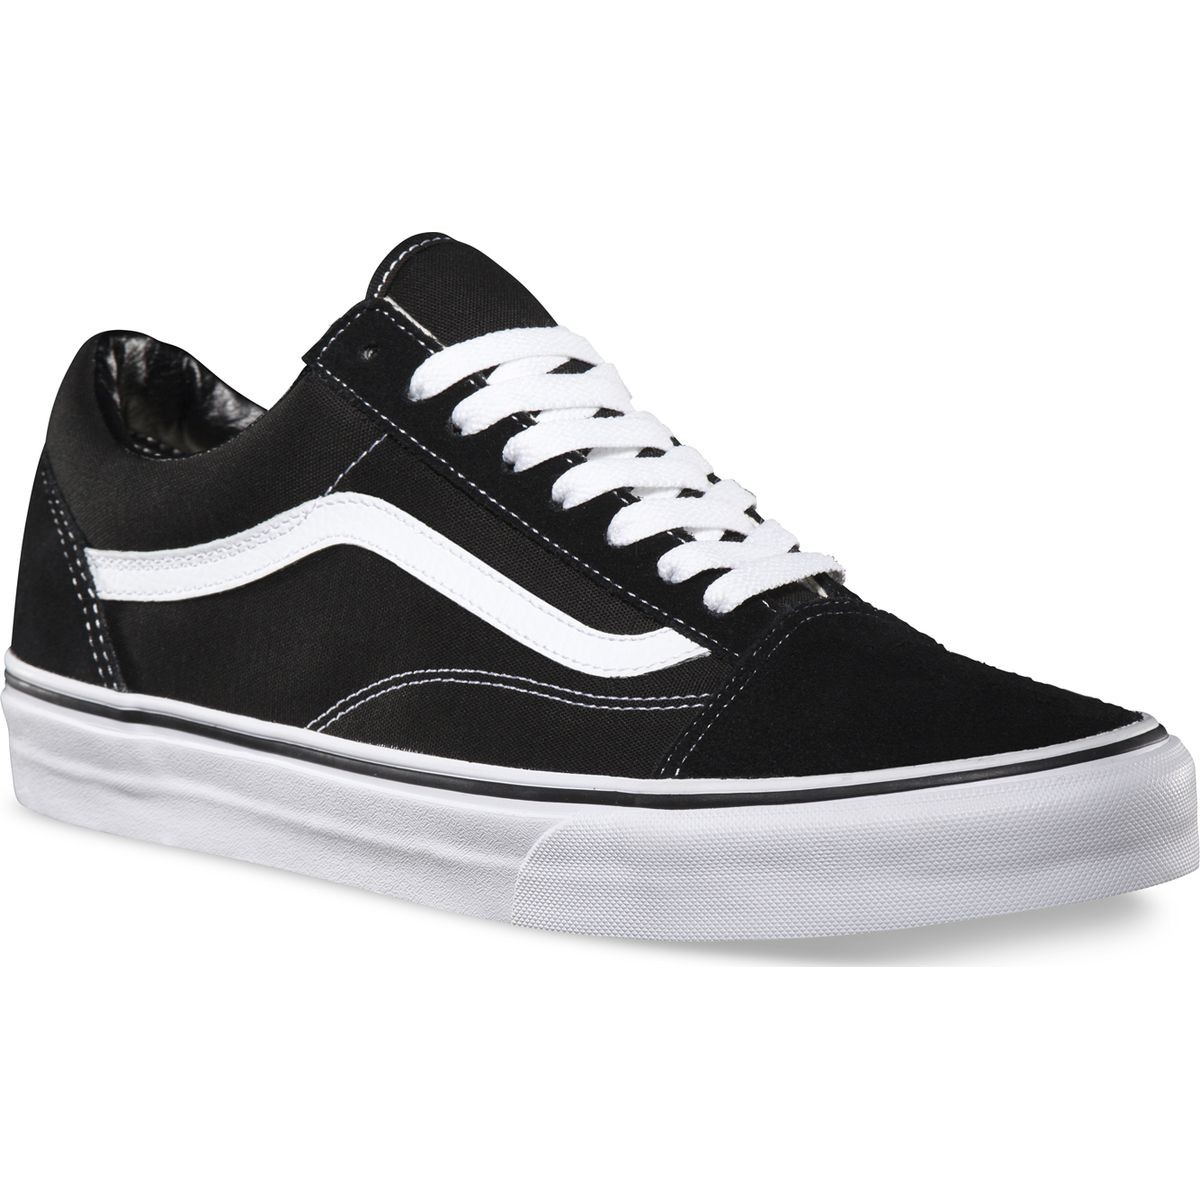 vans old skool promo film de tom cruise nicole kidman. Black Bedroom Furniture Sets. Home Design Ideas